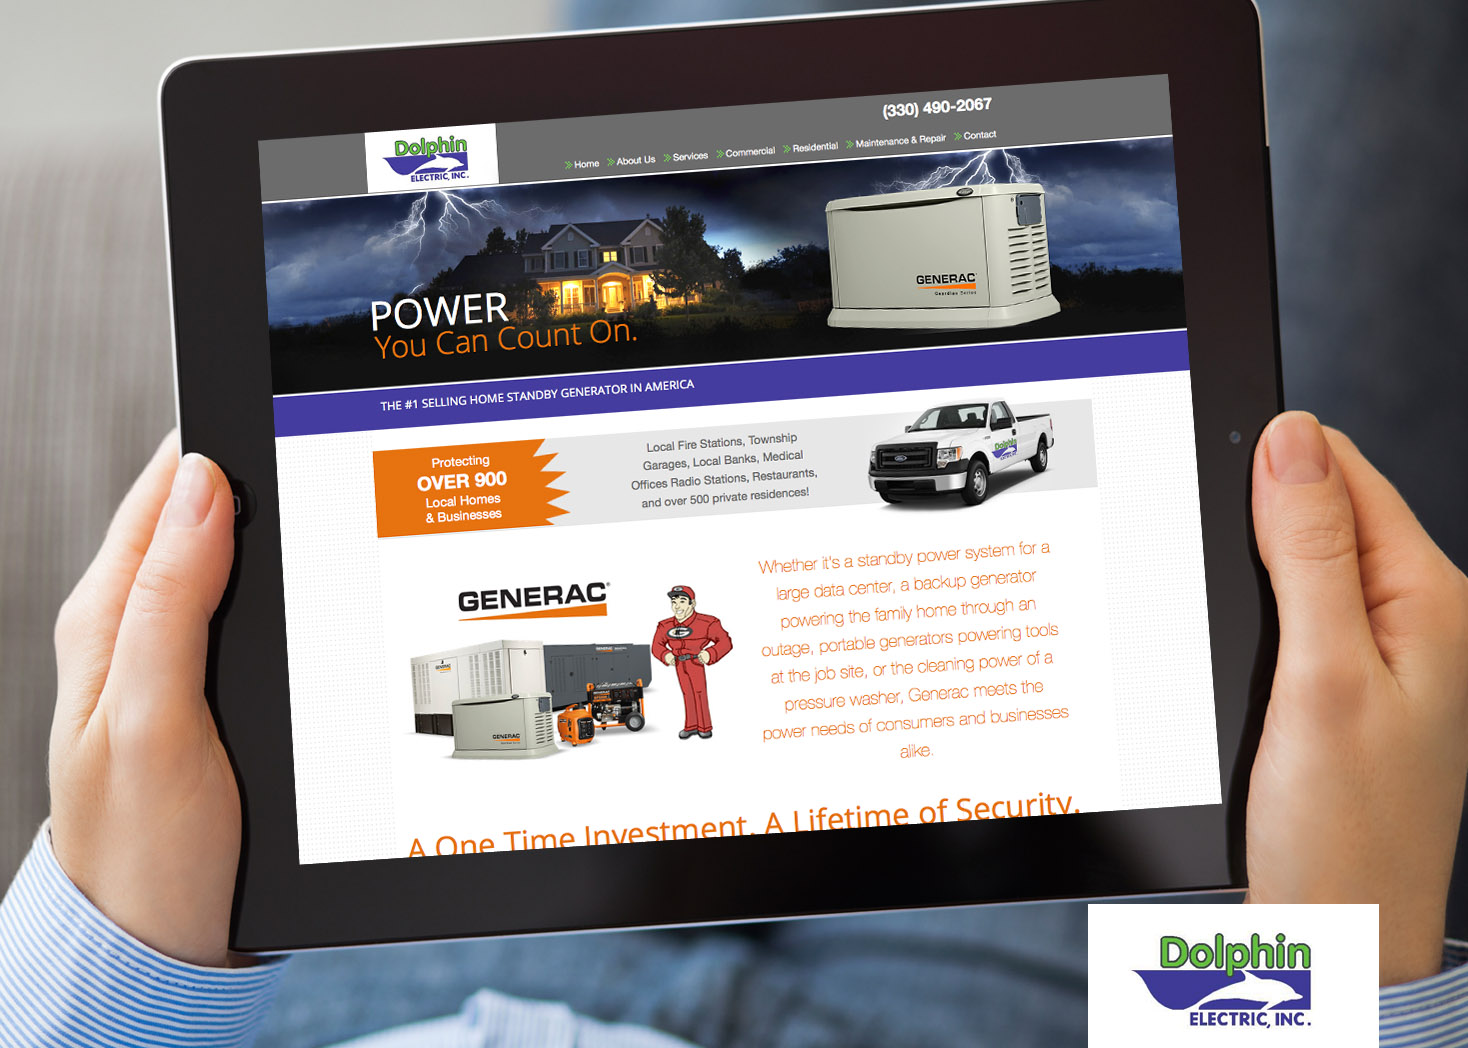 Dolphin Electric - Website Design - Les Lehman Design